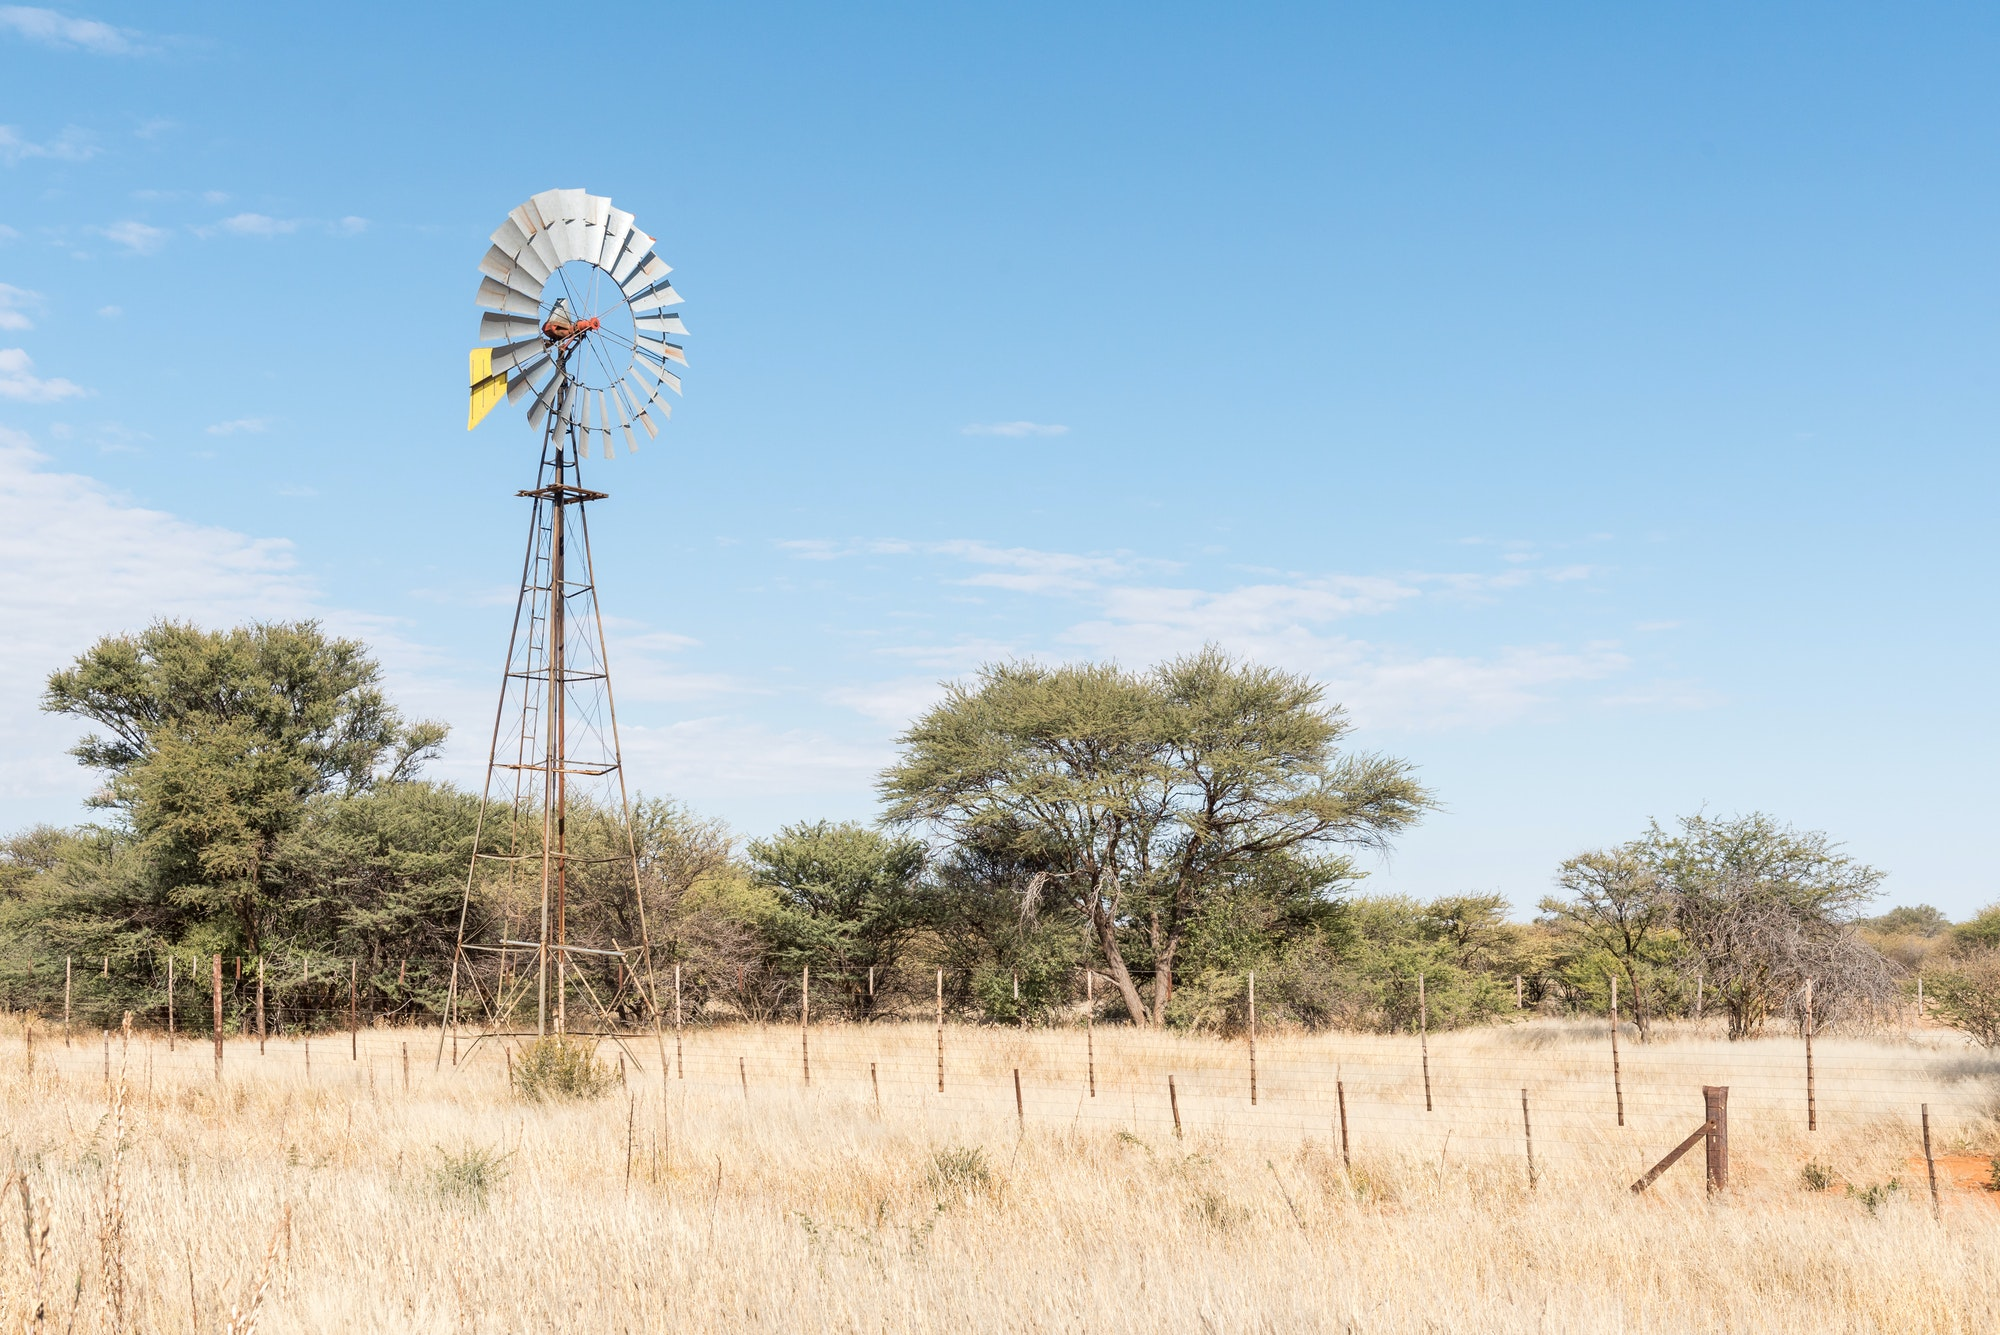 Farm scene with water-pumping windmill on the B1-road